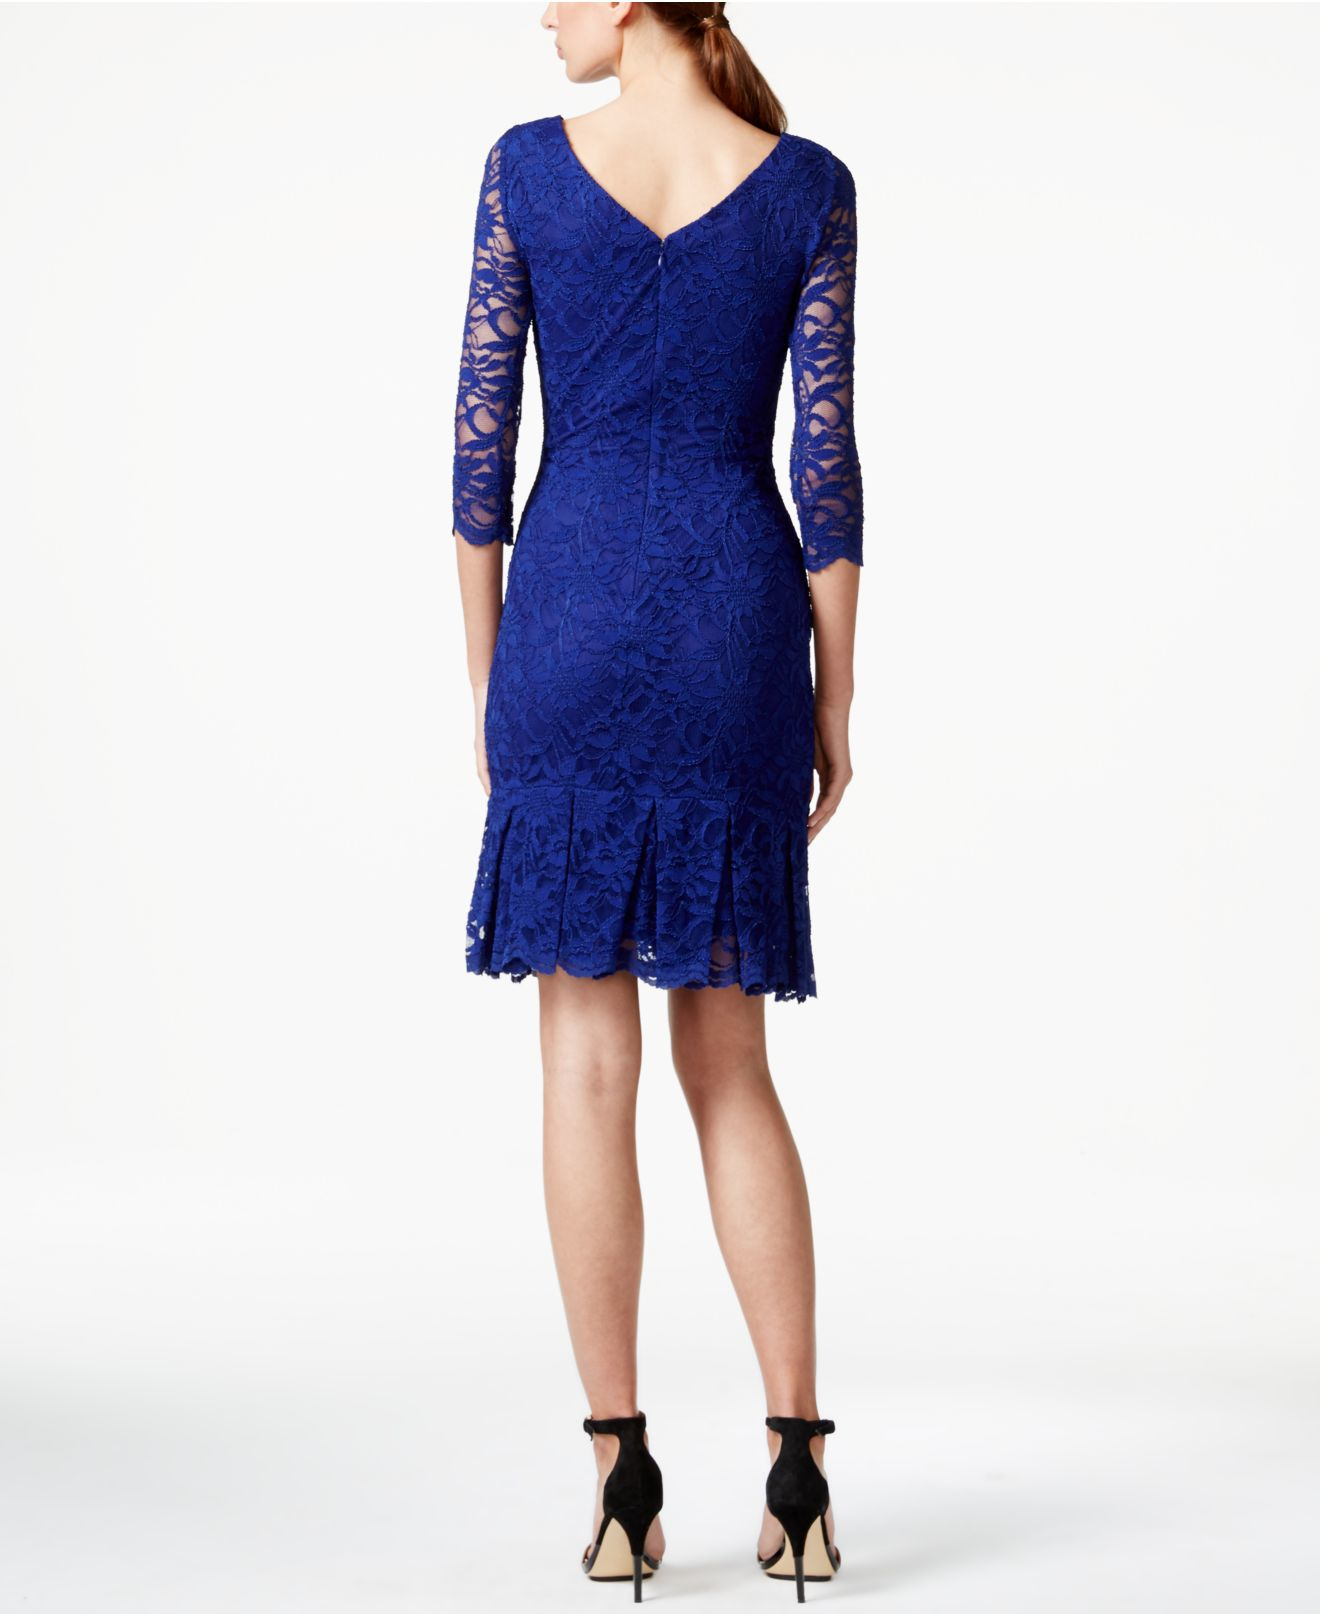 1d6892526c05 Lyst - Calvin Klein Floral Lace Sheath Dress in Blue